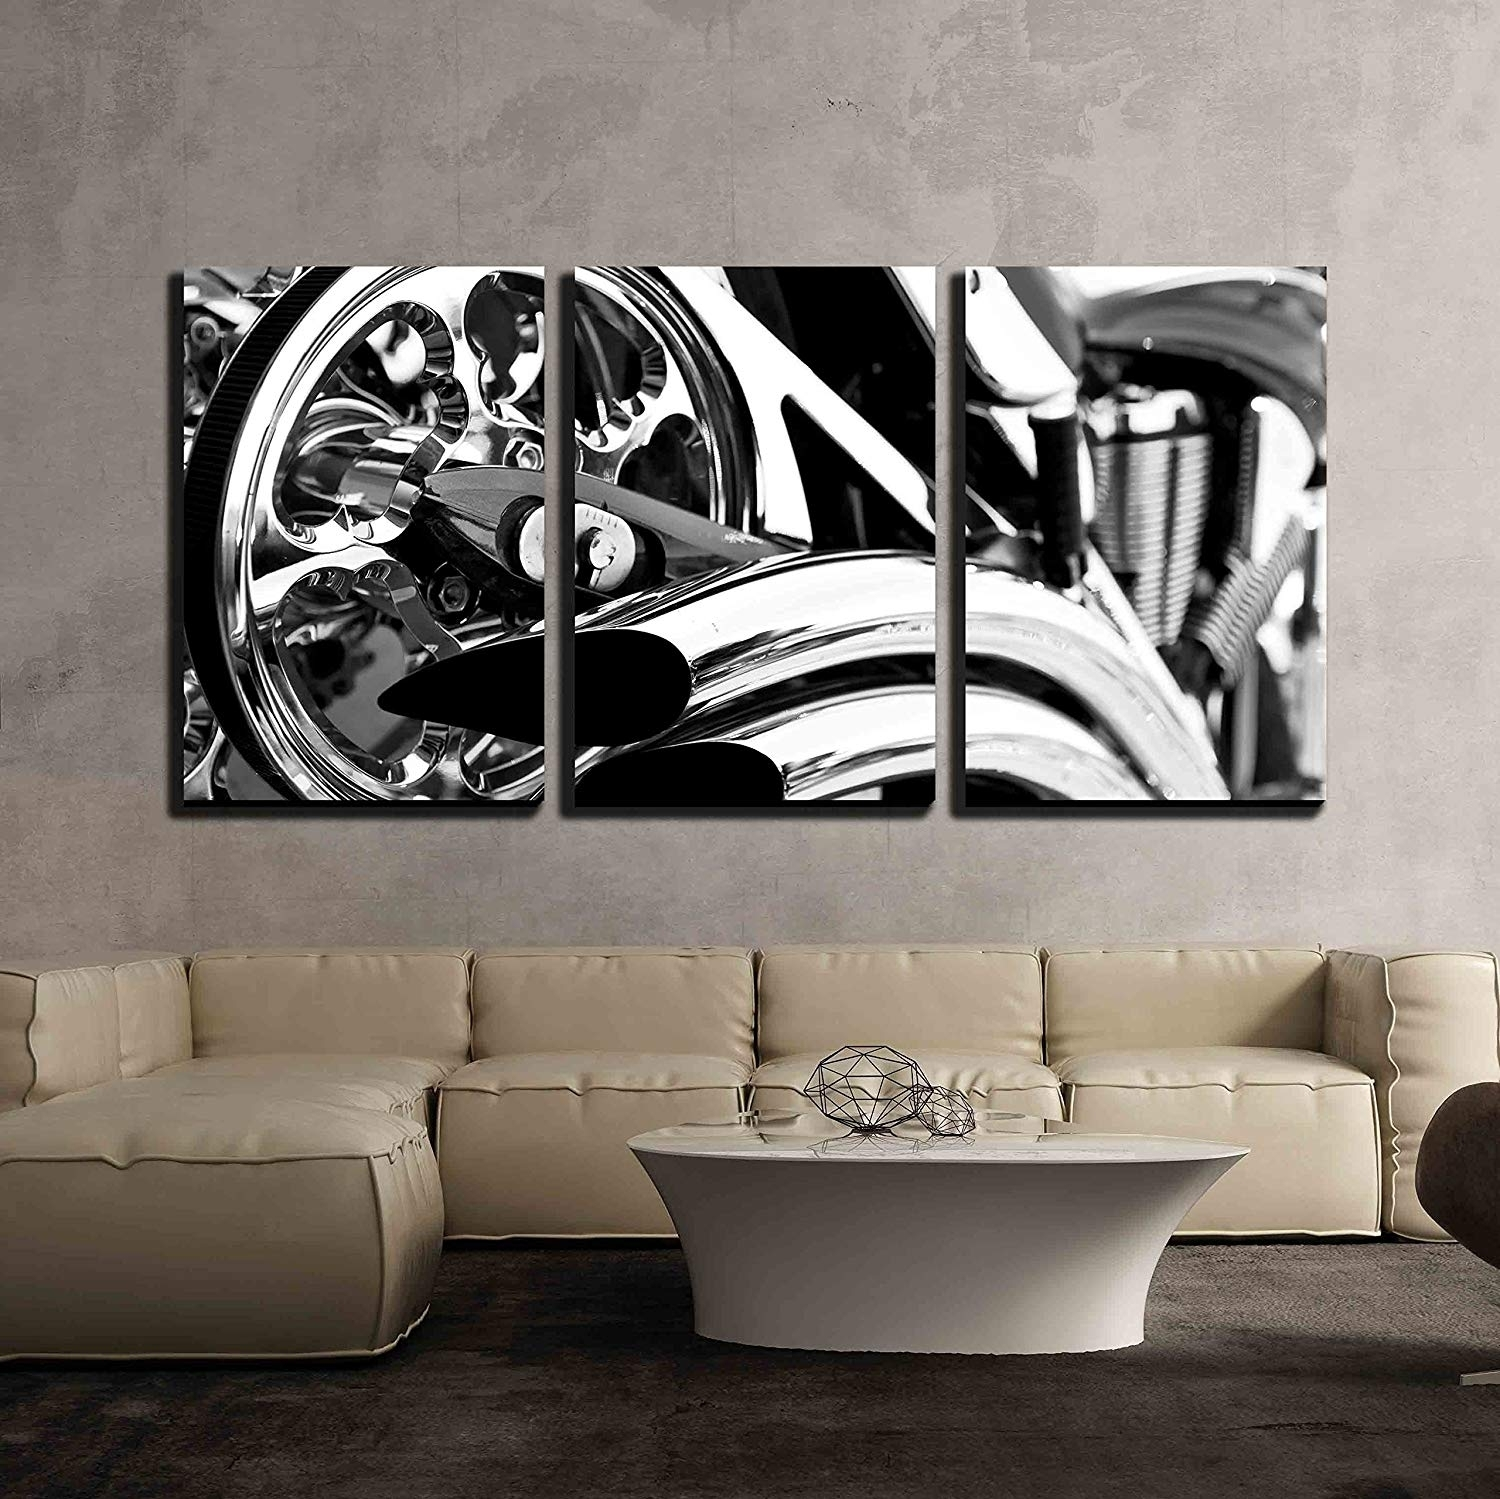 Motorcycle X3 Panels - Canvas Art | Wall26 inside Motorcycle Wall Art (Image 14 of 20)